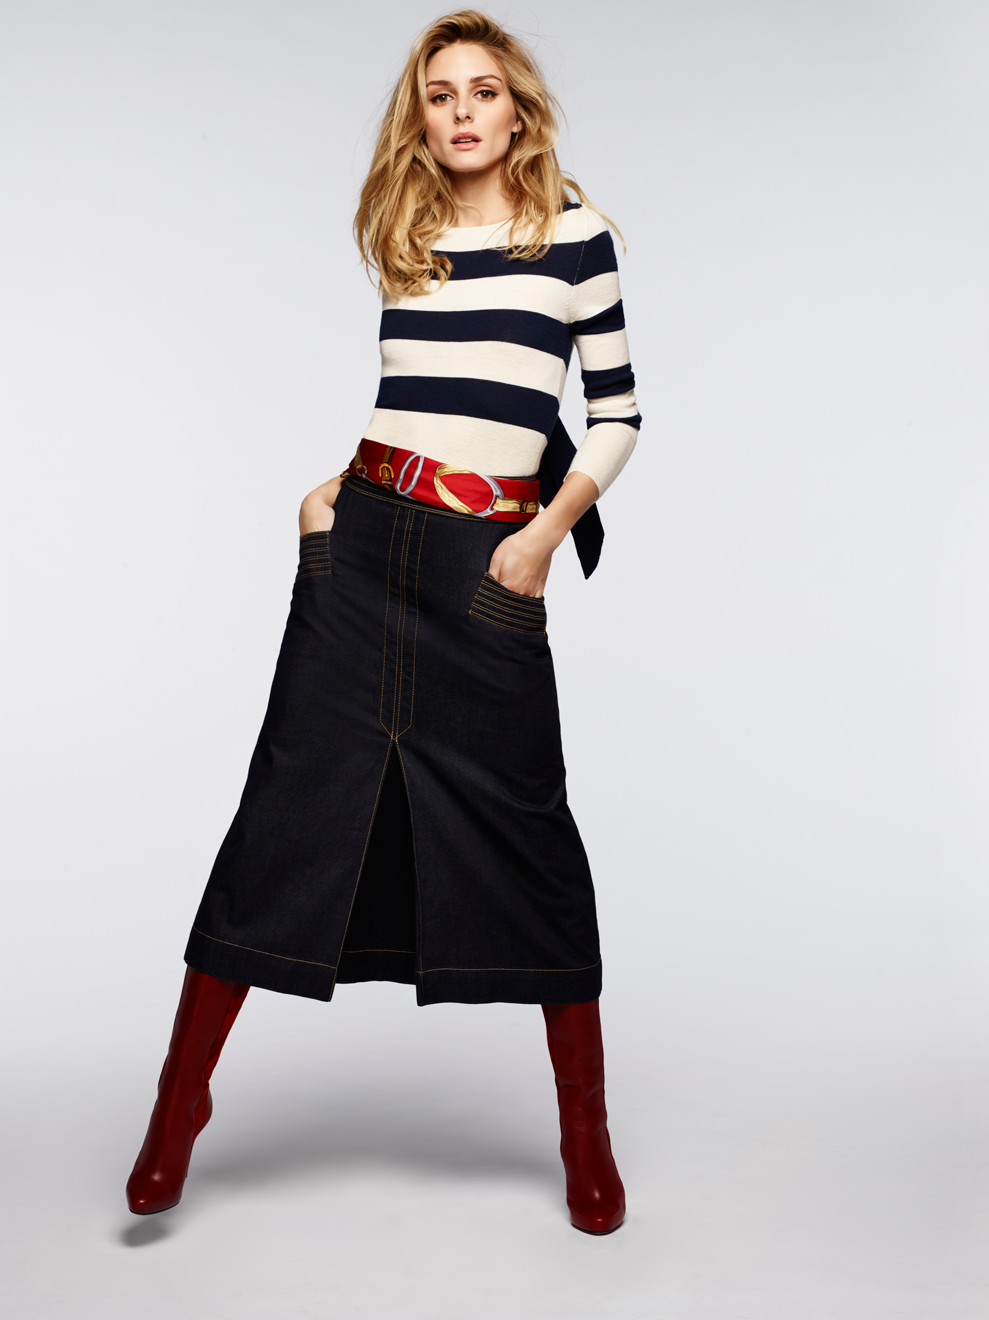 Olivia-Palermo-Chelsea28-41.png